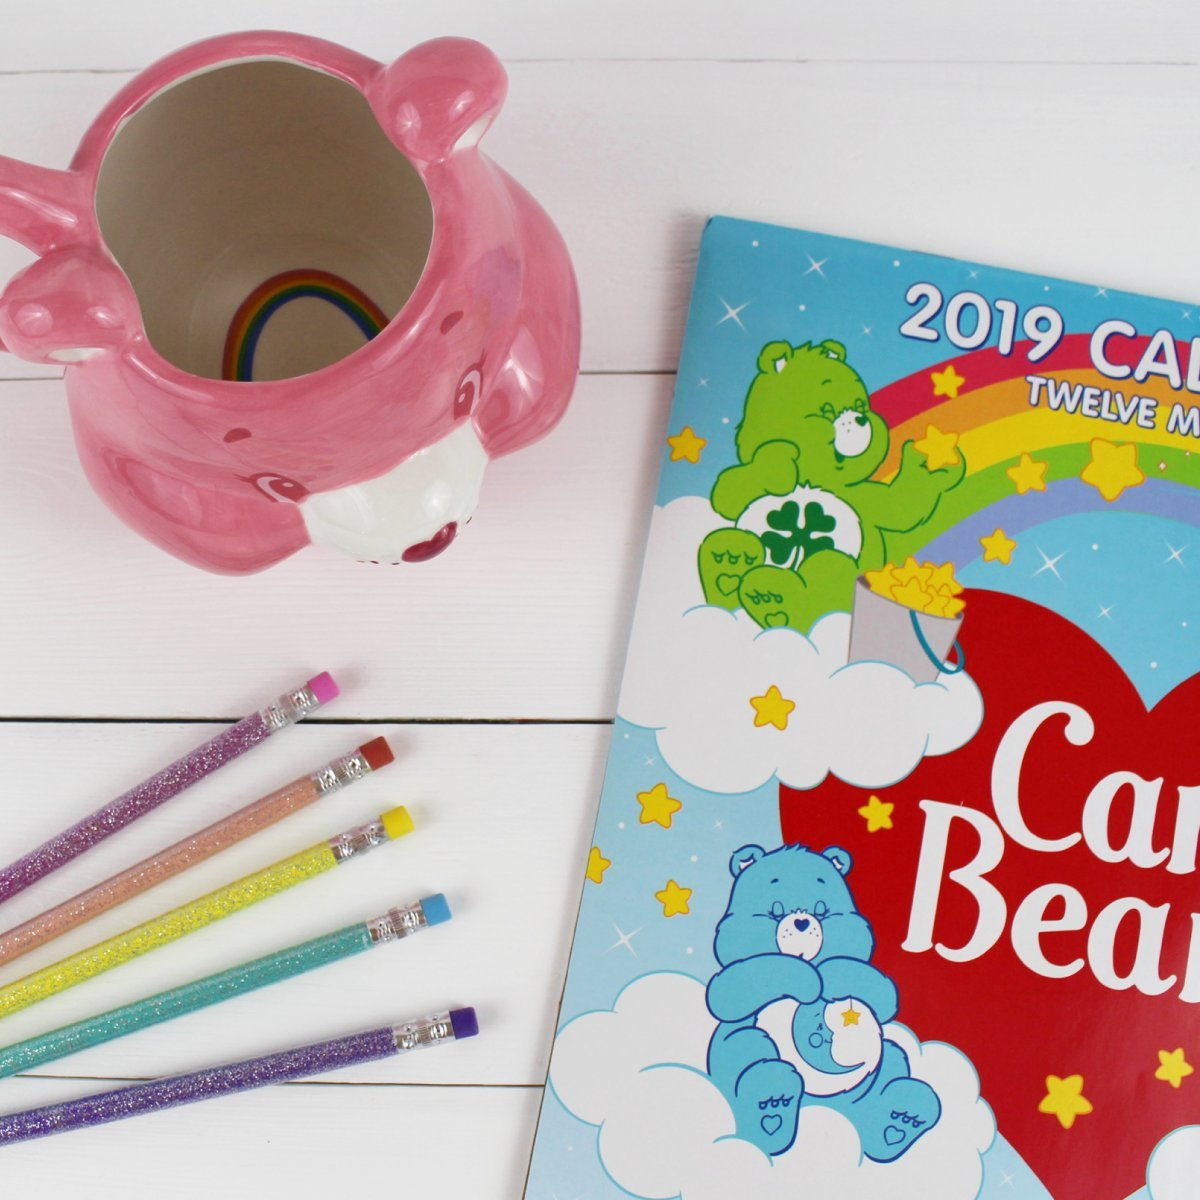 "Care Bears™ On Twitter: ""a #retro Calendar To Help You Get Organized Calendar 2019 Dollar Tree"